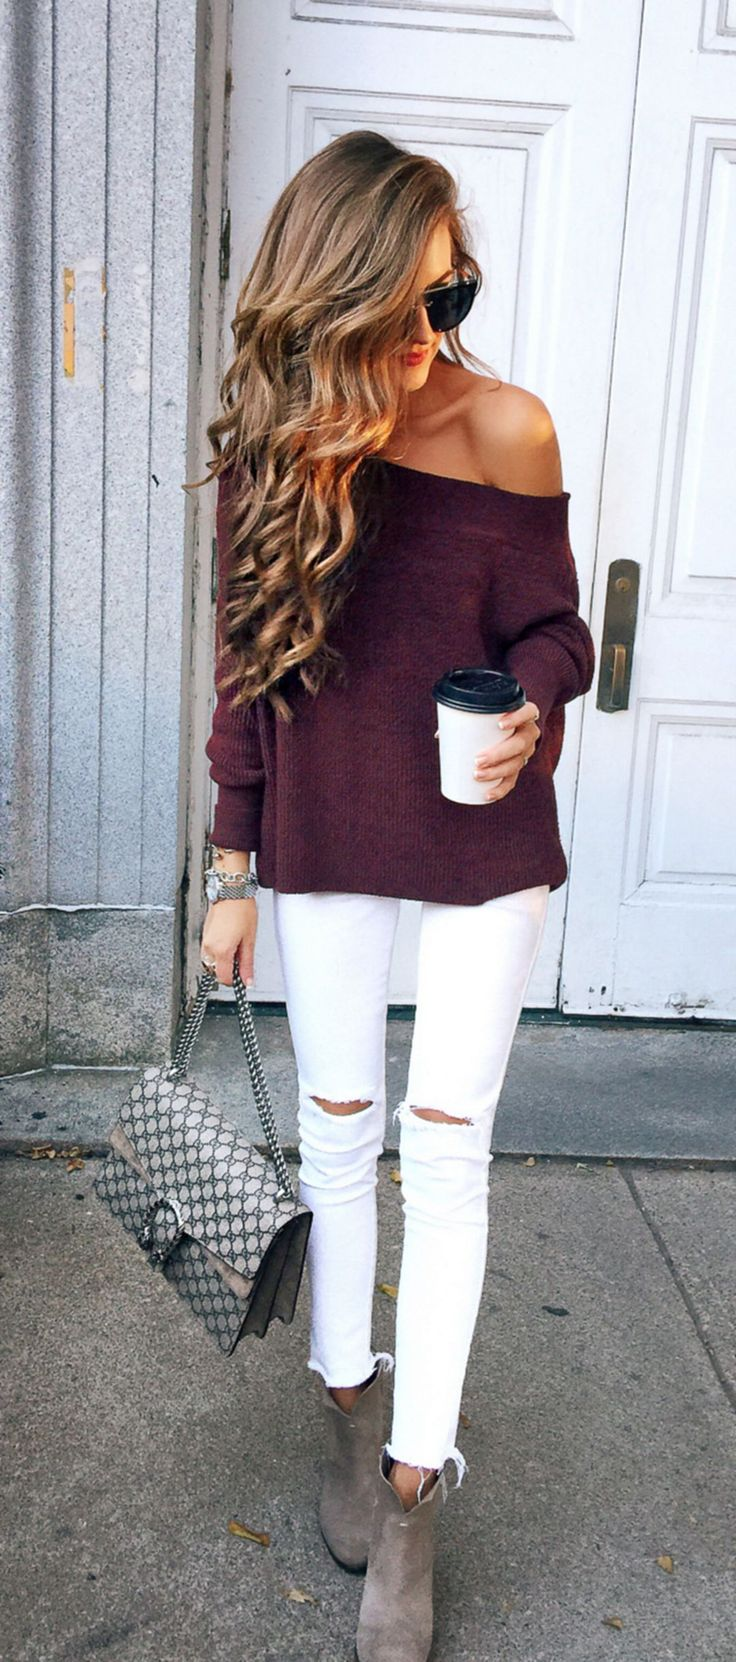 Best Comfortable Women Fall Outfits Ideas As Trend 2017 261 https://montenr.com/75-best-comfortable-women-fall-outfits-ideas-as-trend-2017/best-comfortable-women-fall-outfits-ideas-as-trend-2017-261/